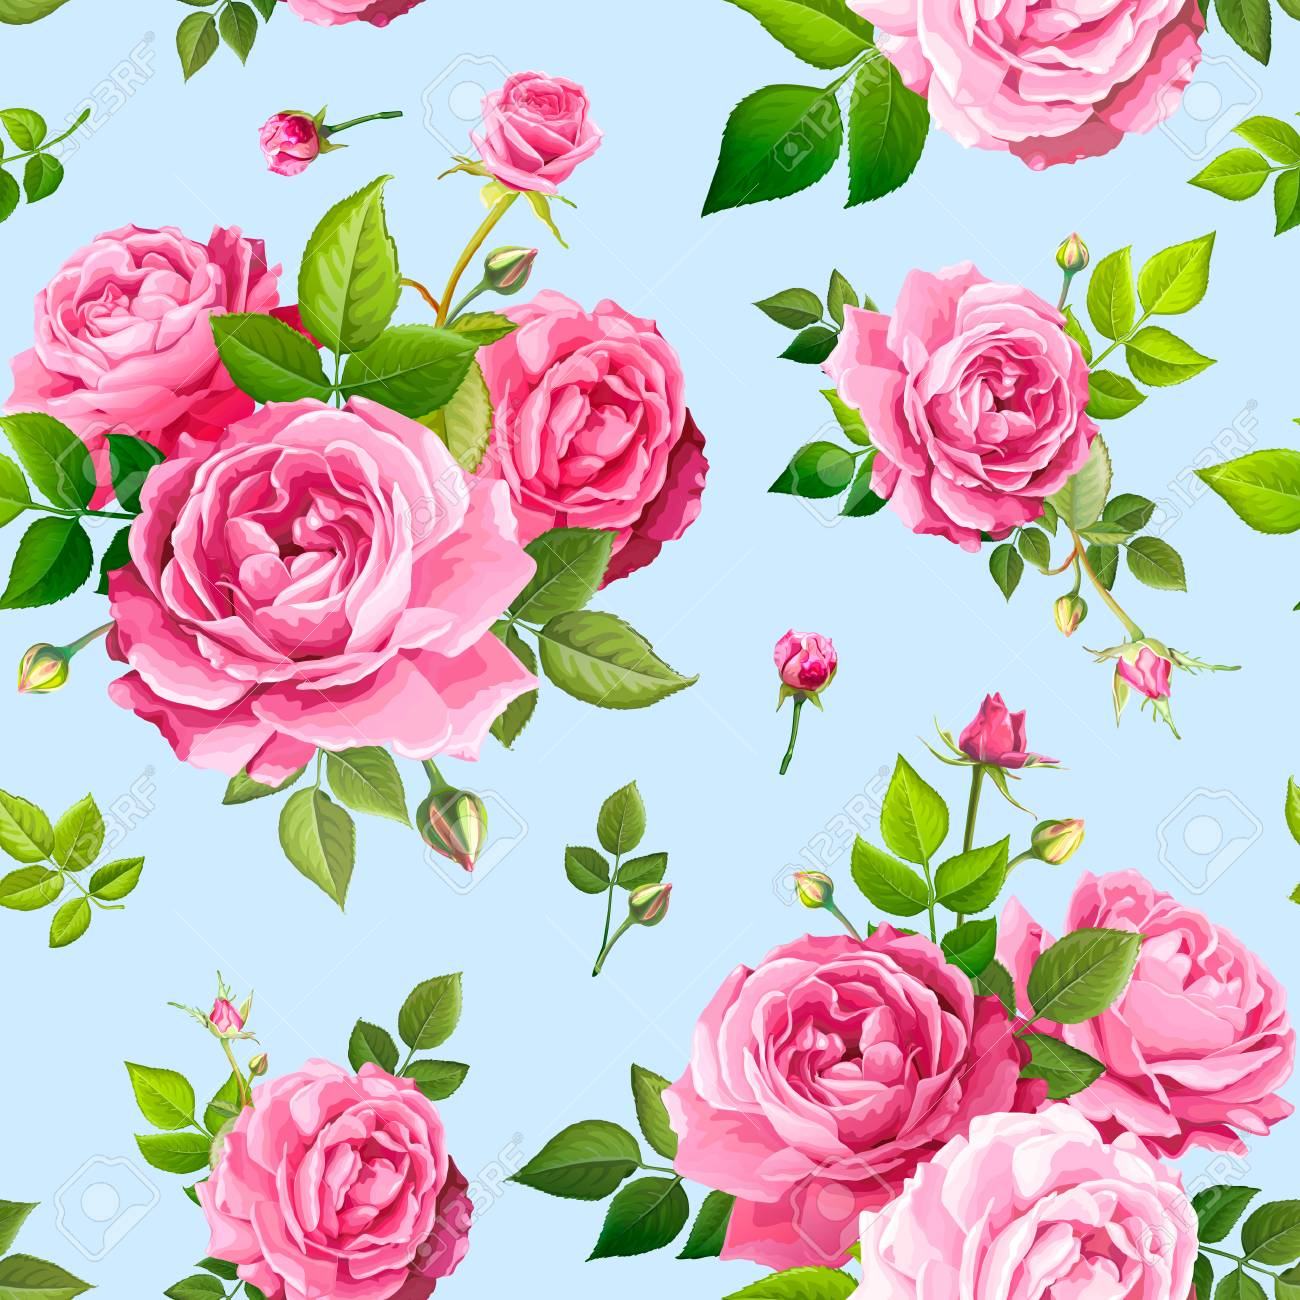 Beautiful spring or summer seamless pattern with bouquets flowers of pink blooming roses, green leaves and buds on a light blue background. Lovely floral design element of textile. Vector illustration - 127109026